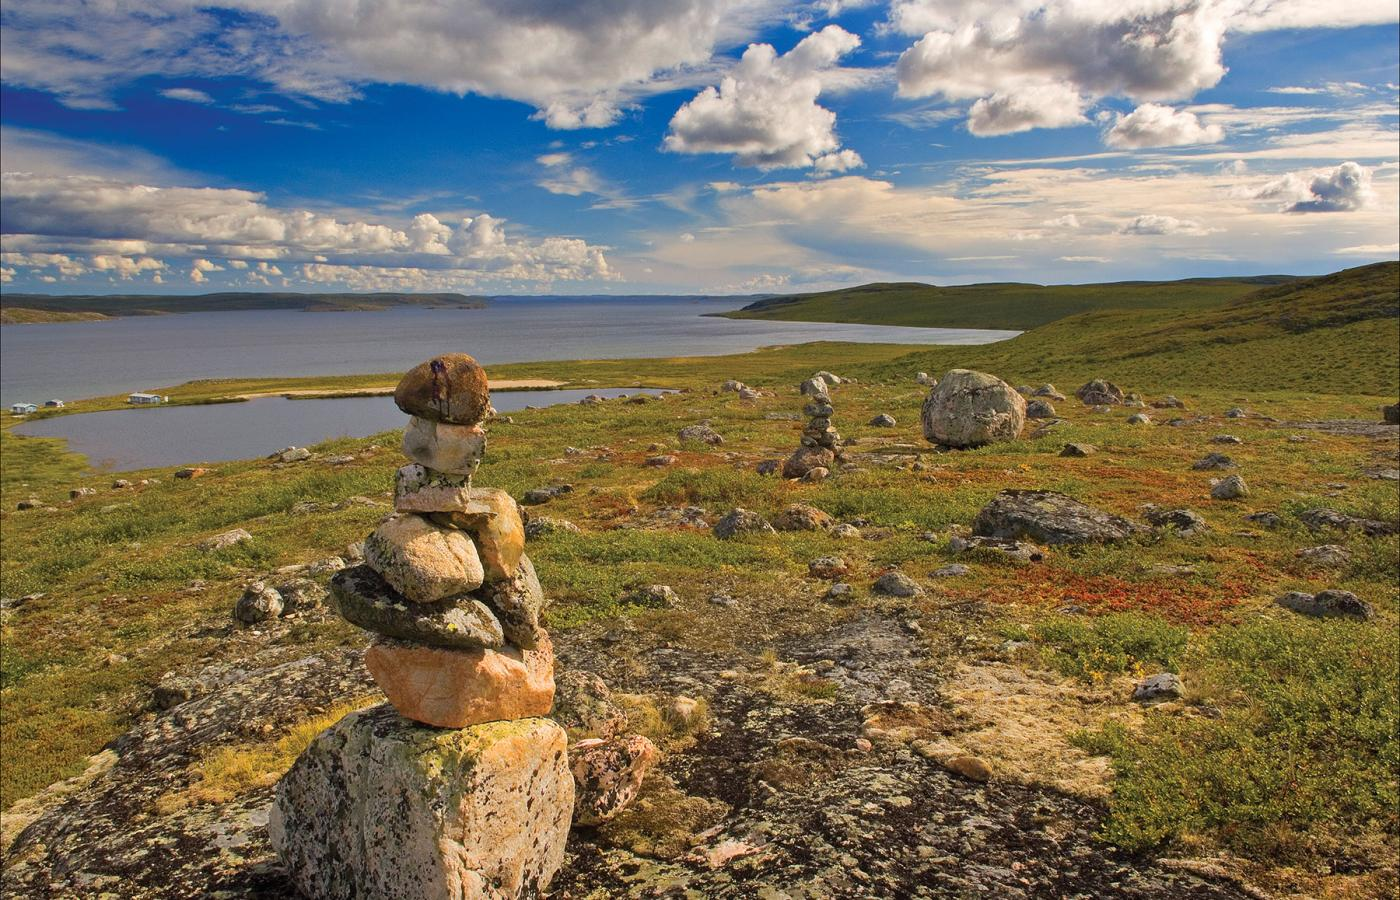 Rocks stacked on the Barrenlands, in Canada's Northwest Territories